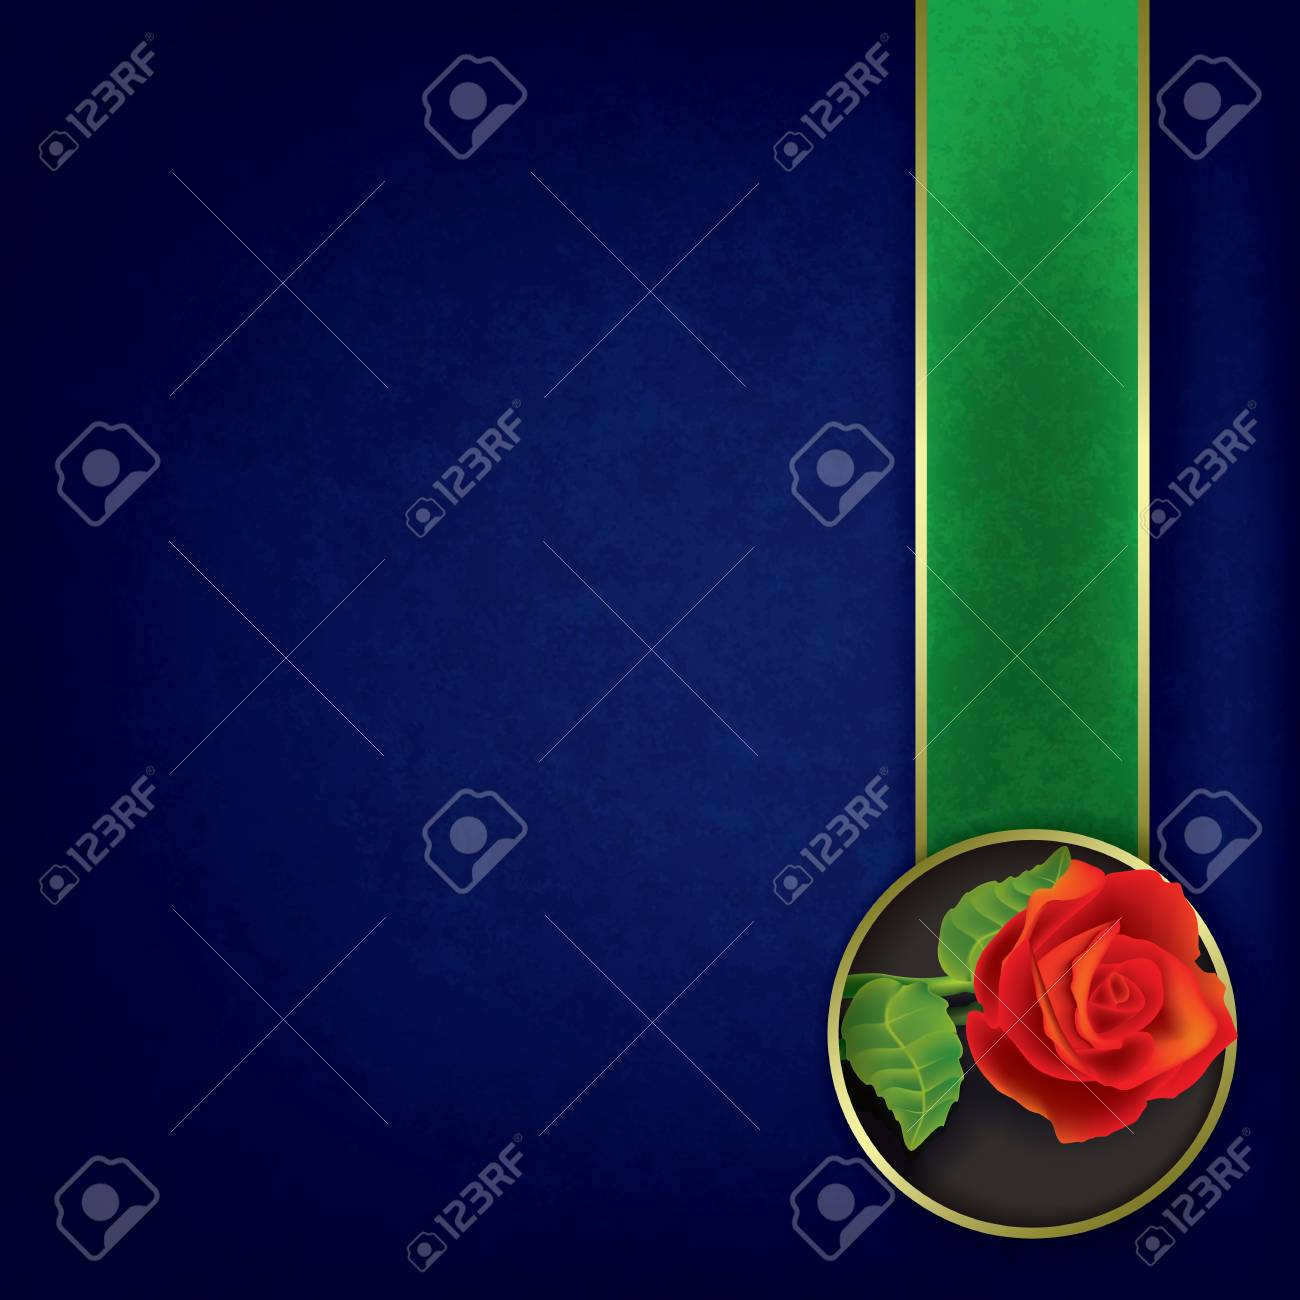 abstract grunge blue background with red rose Stock Vector - 16352377